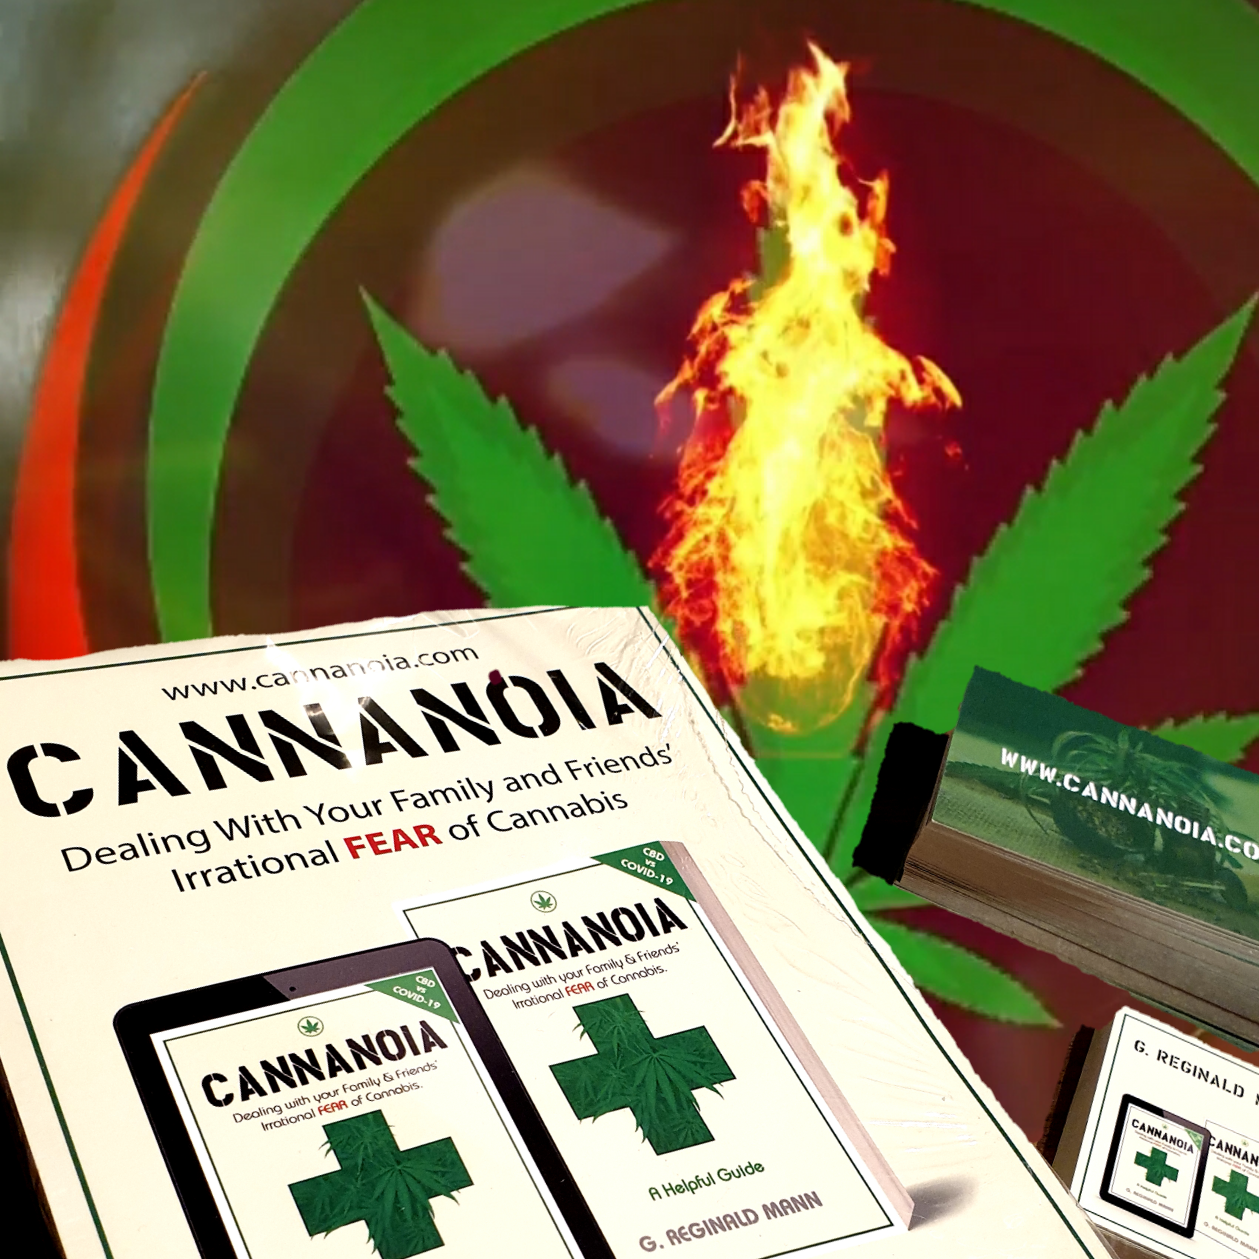 Cannanoia - Dealing with your family and friends irrational FEAR of cannabis.